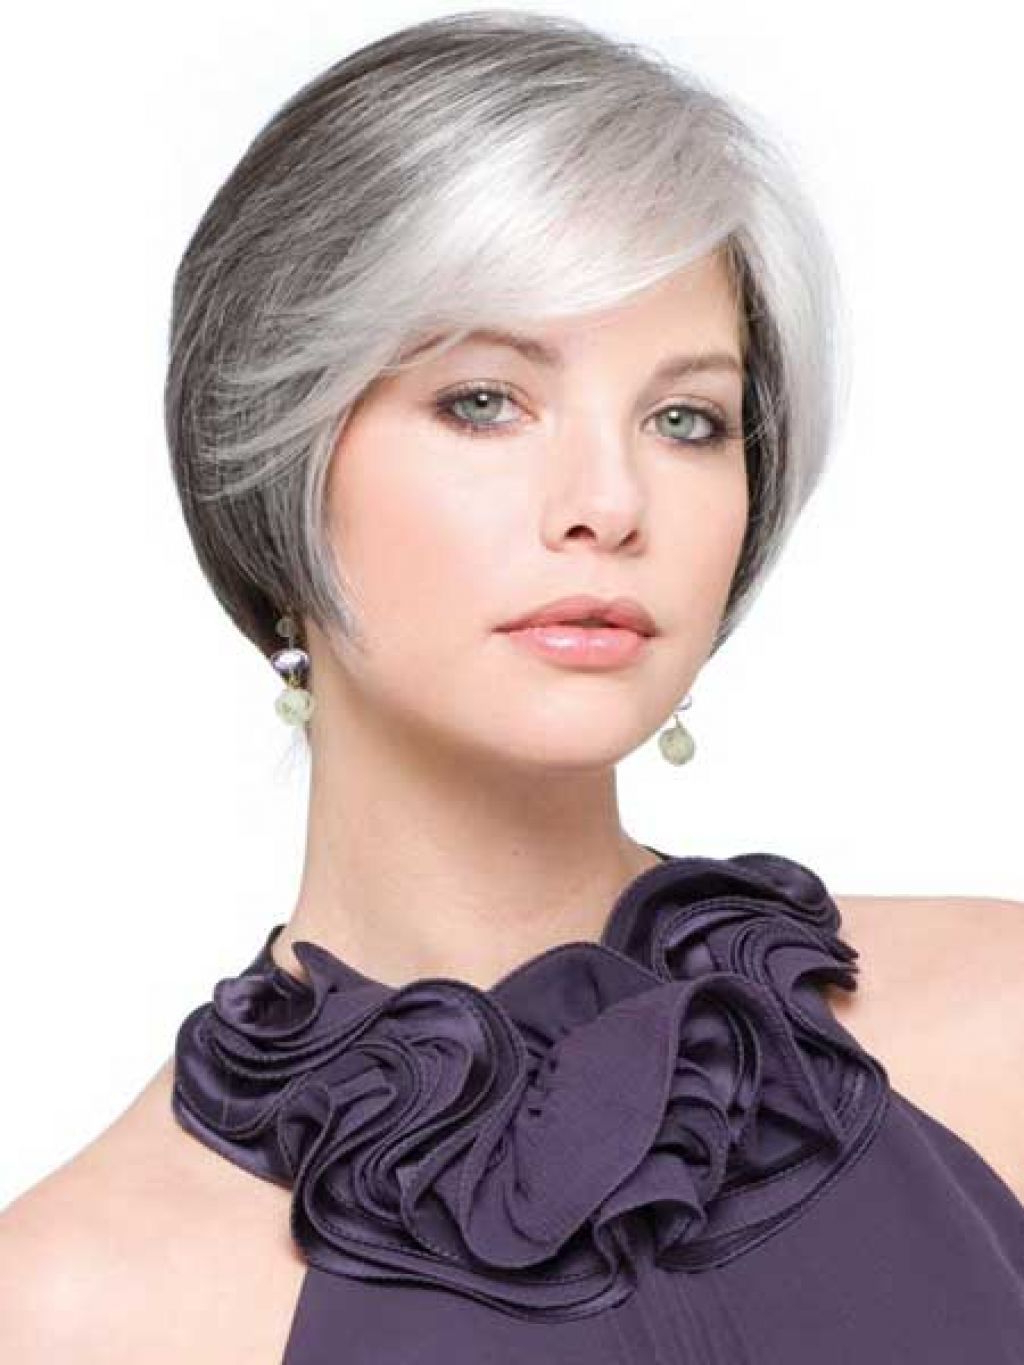 Short Hairstyles For Older Women With Gray Hair  | Haircut'smen Inside Short Haircuts For Gray Hair (View 24 of 25)